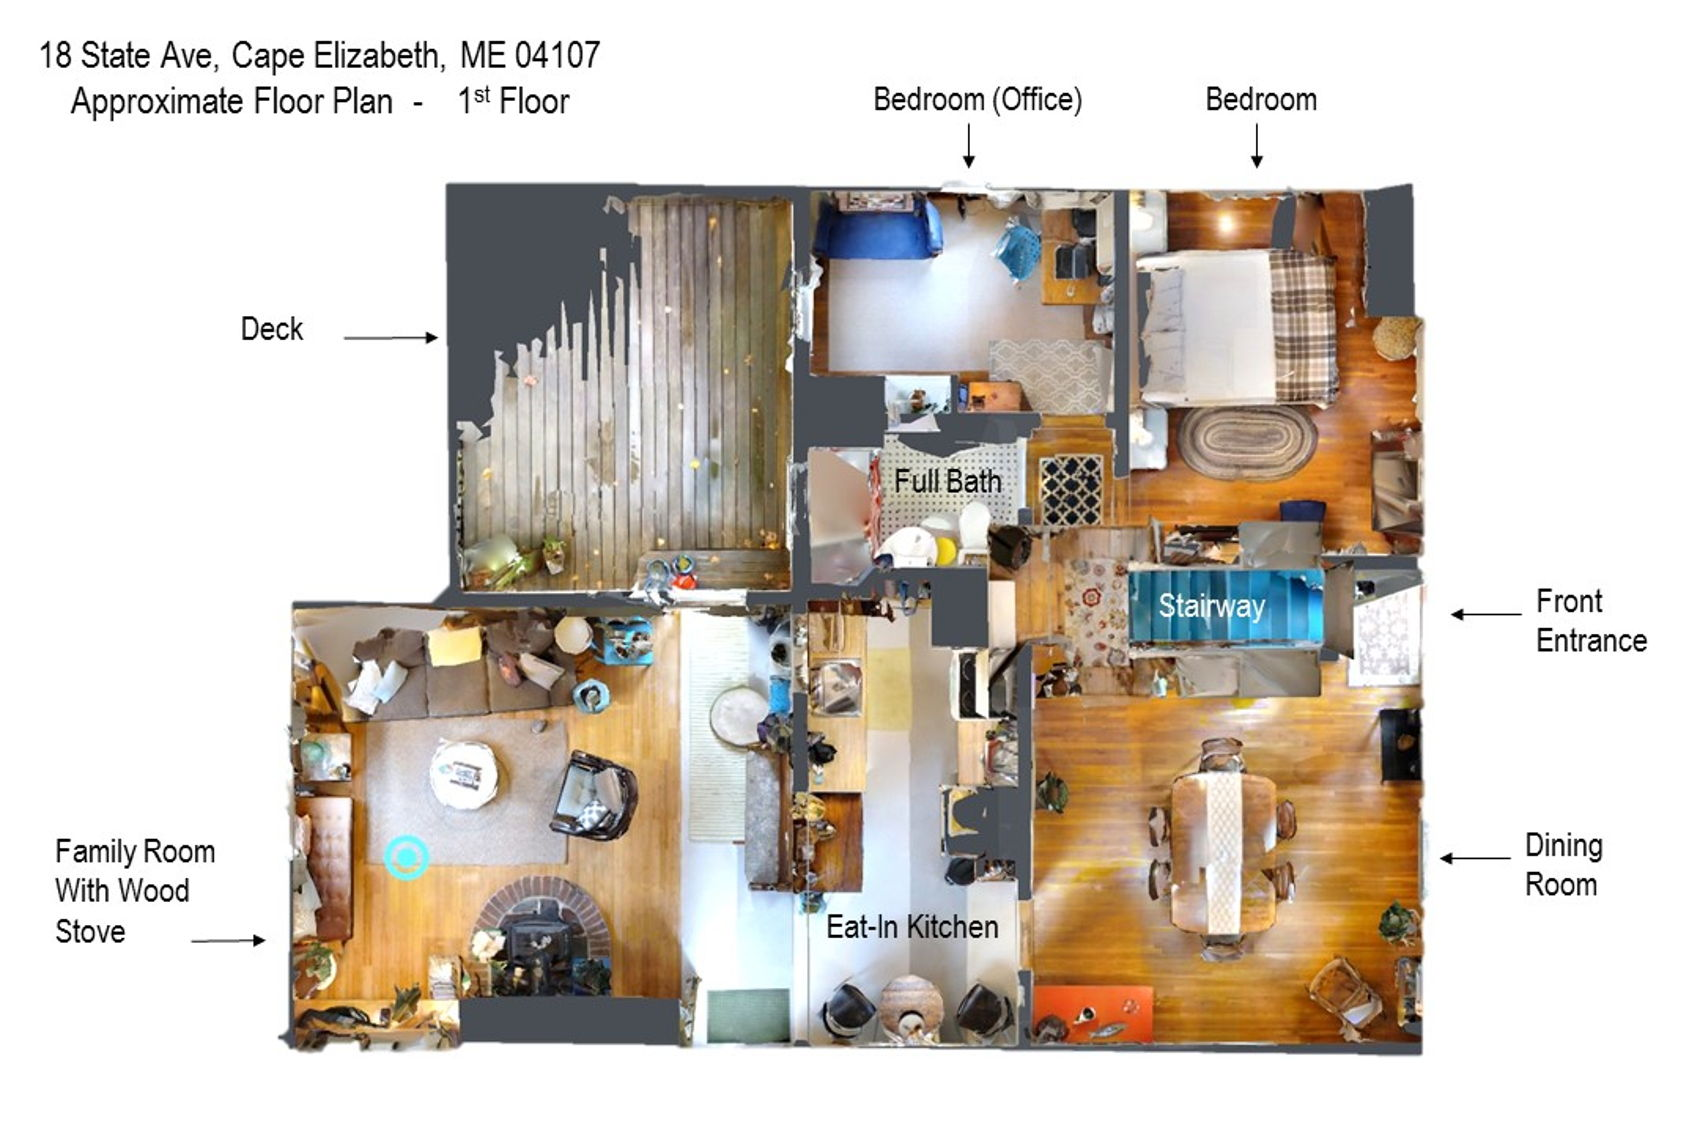 Floorplan from above